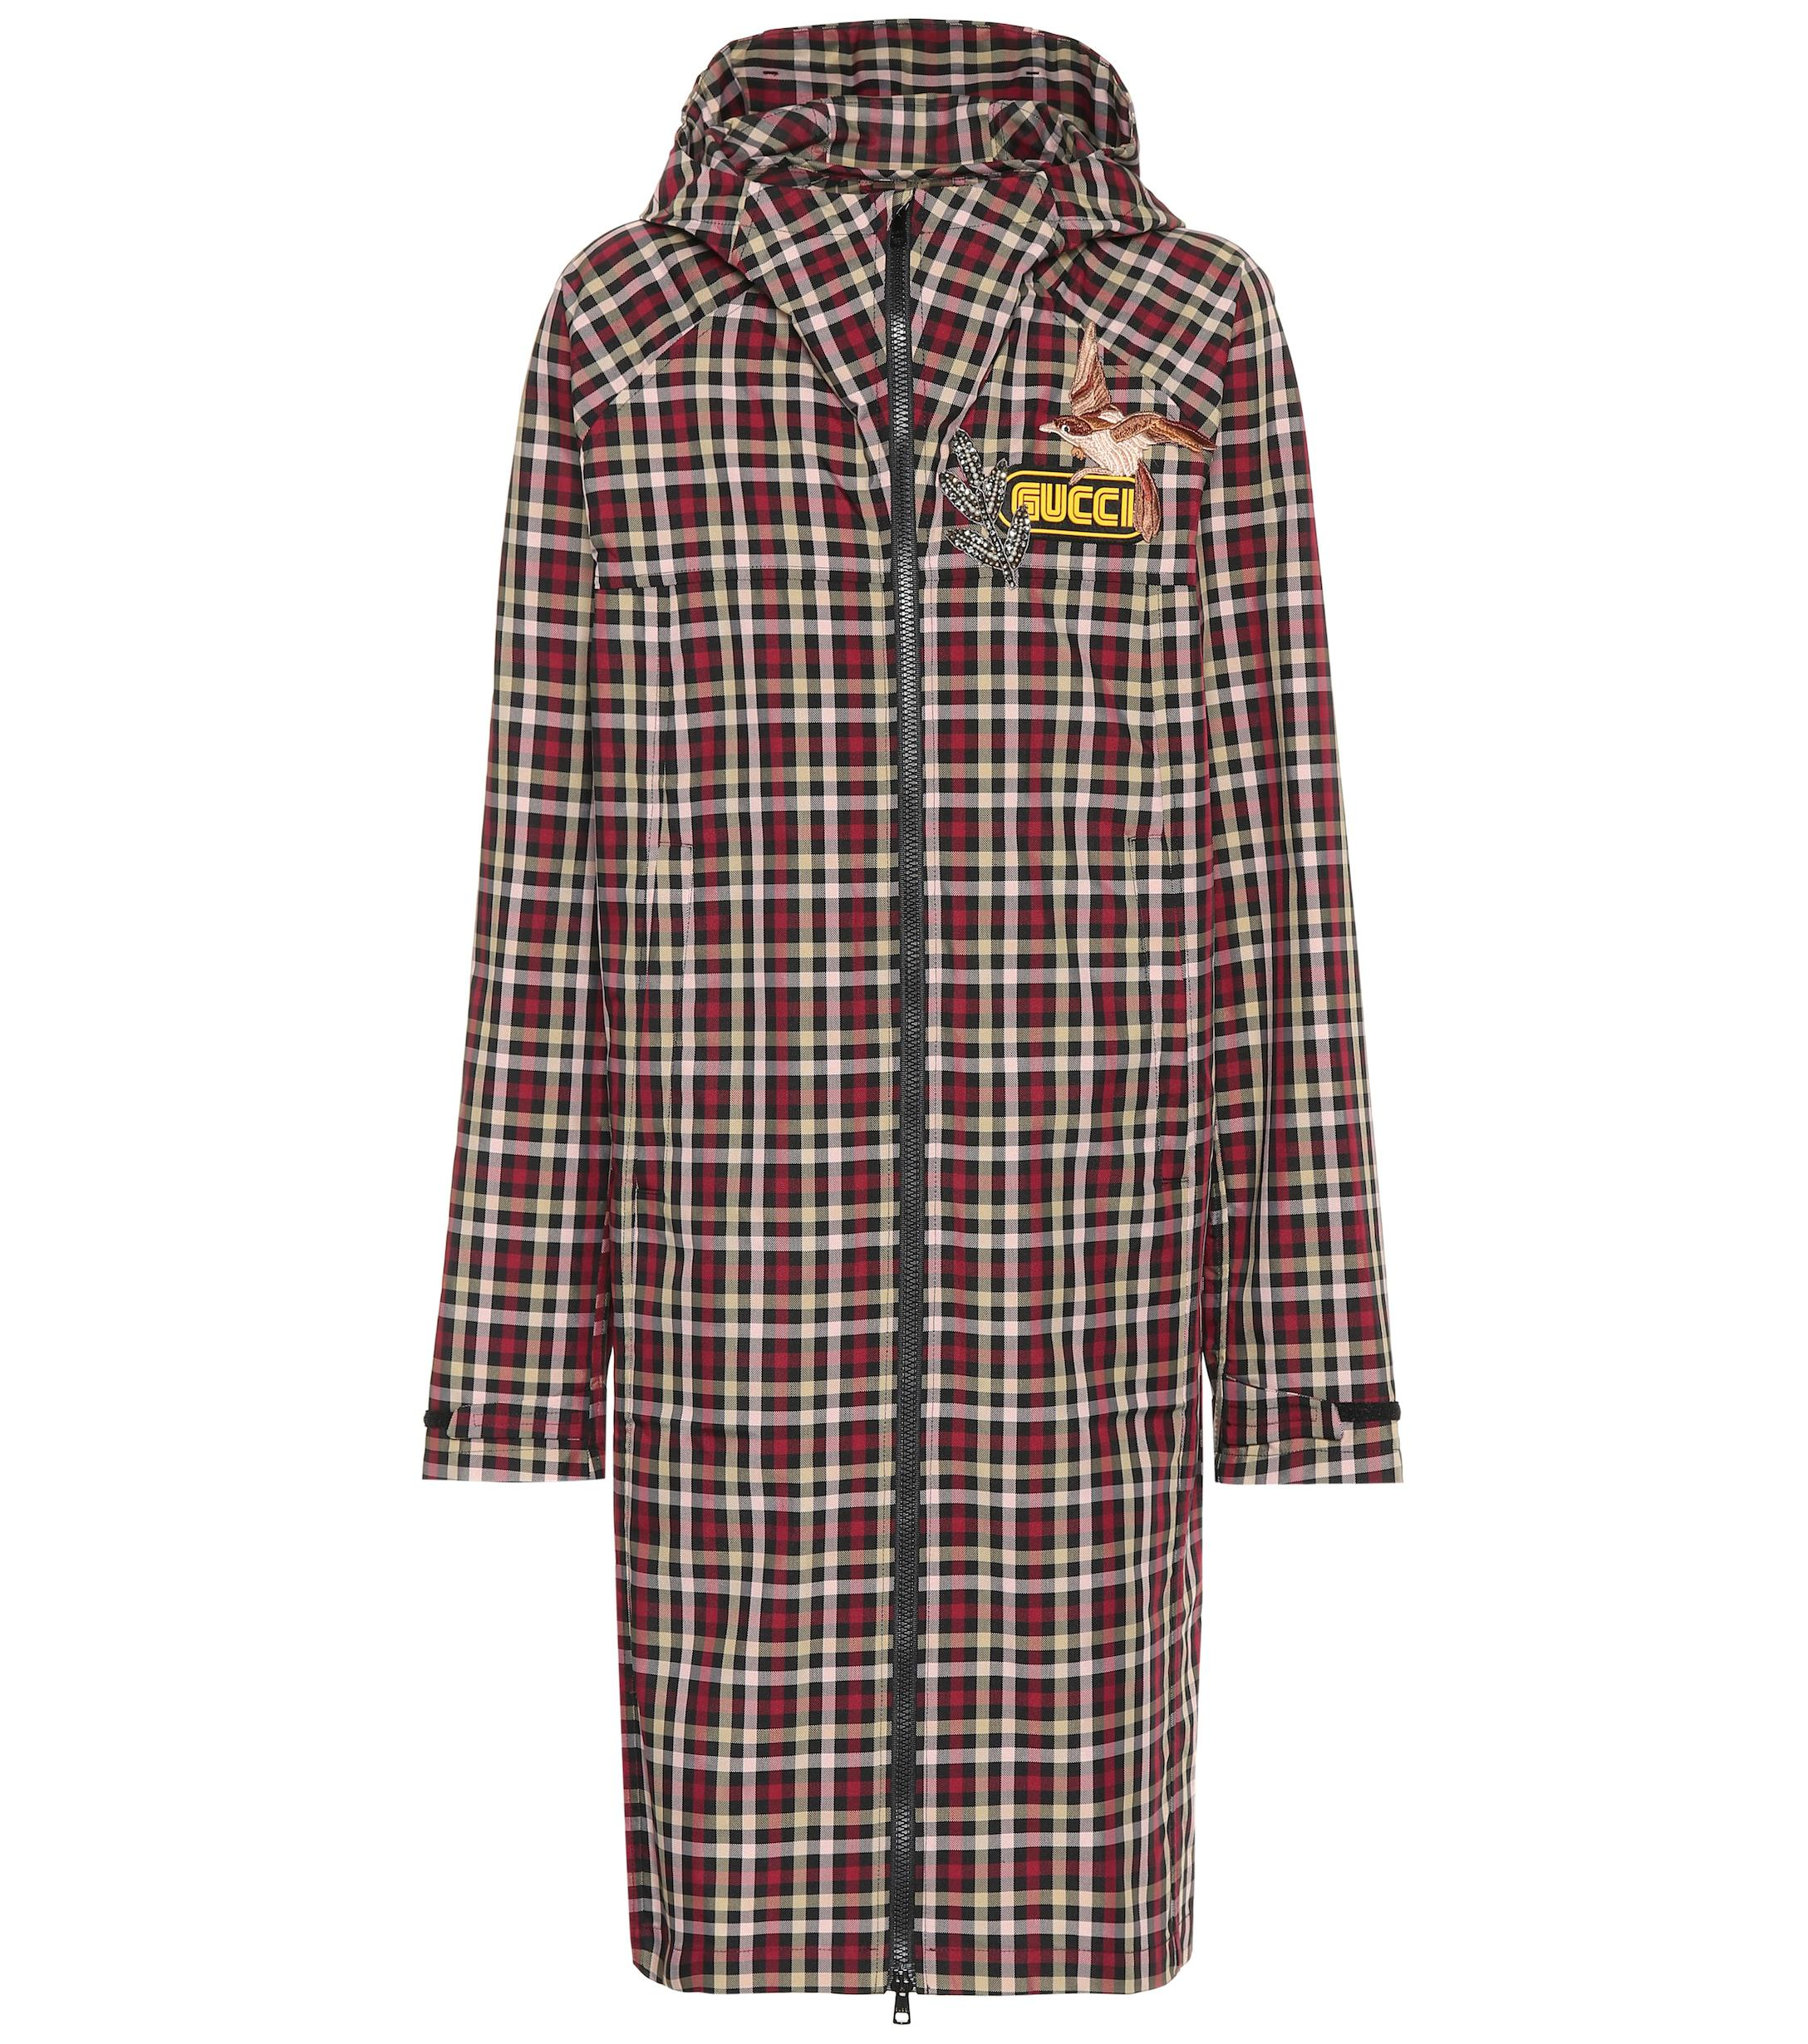 9dafd05ee Gucci Plaid Coat in Brown - Lyst